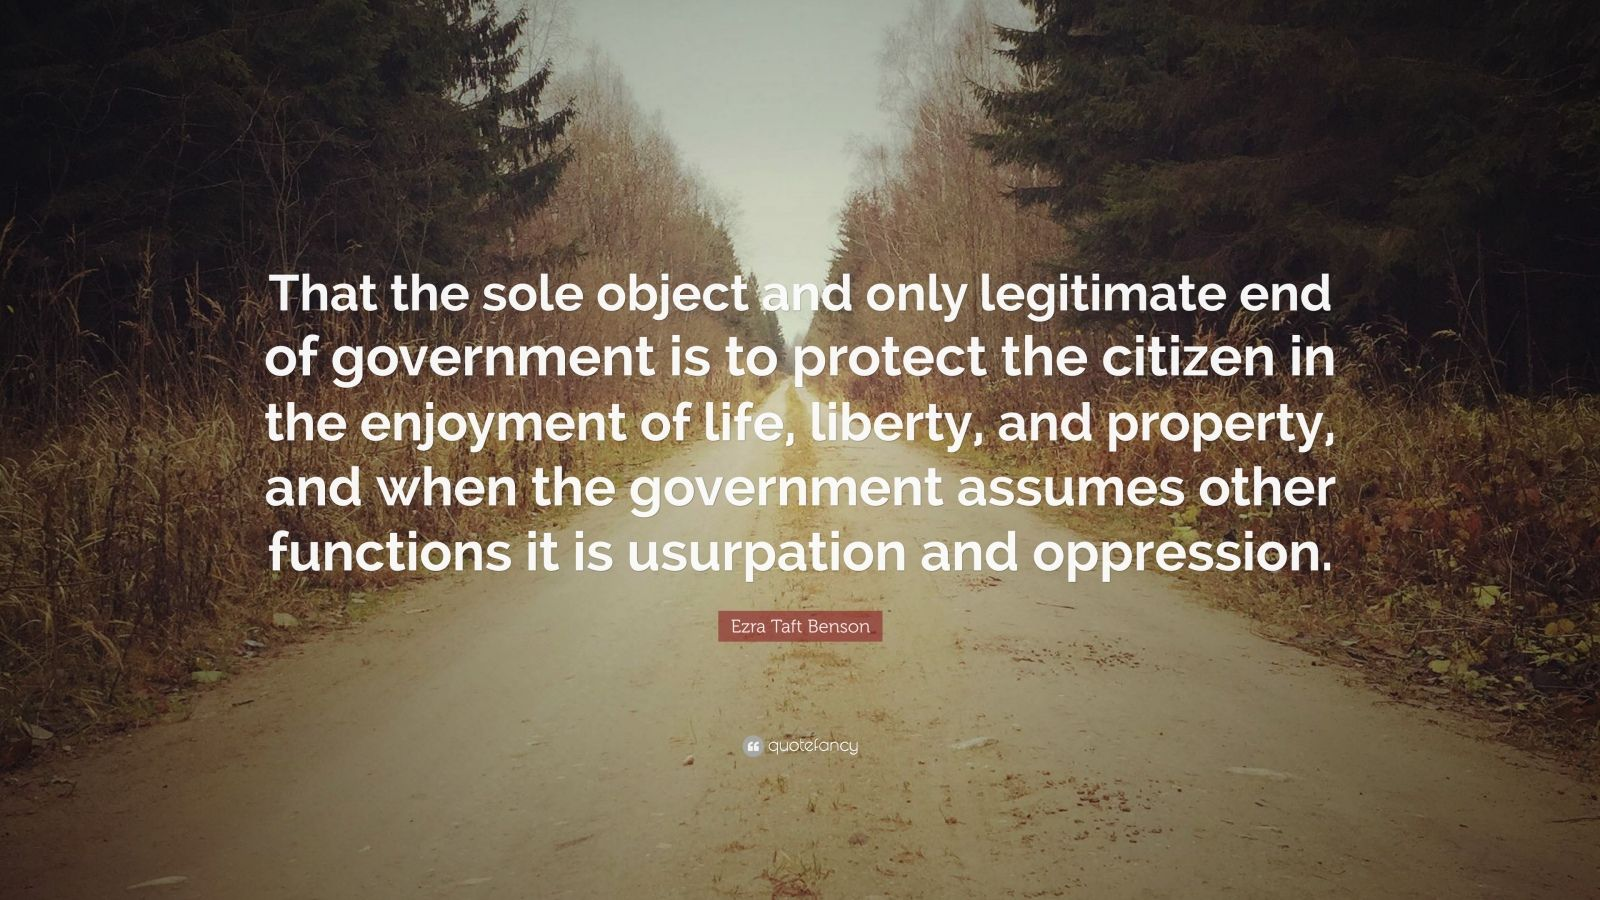 "Ezra Taft Benson Quote: ""That the sole object and only legitimate end of government is to protect the citizen in the enjoyment of life, liberty, and property, and when the government assumes other functions it is usurpation and oppression."""